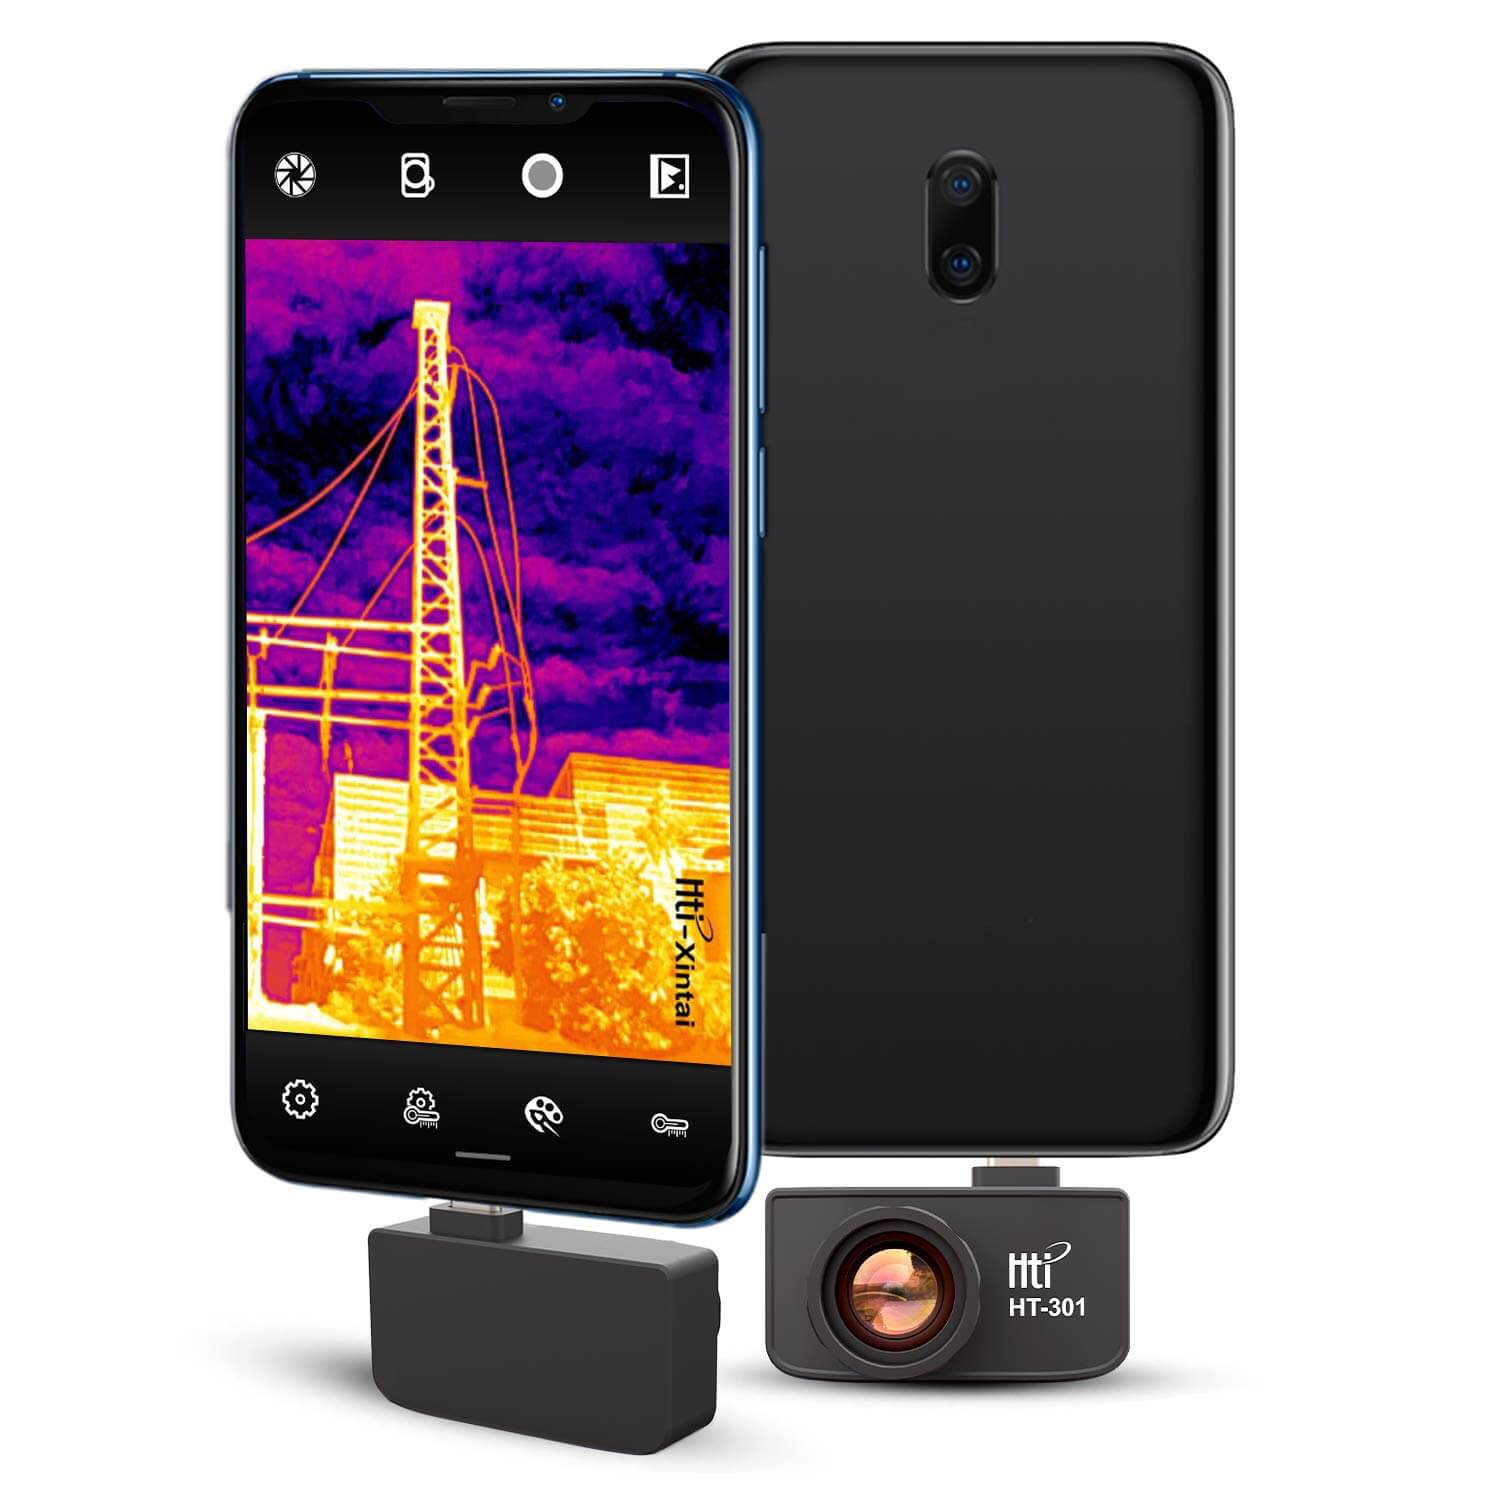 Best Thermal Imaging Camera for Android - HT-301